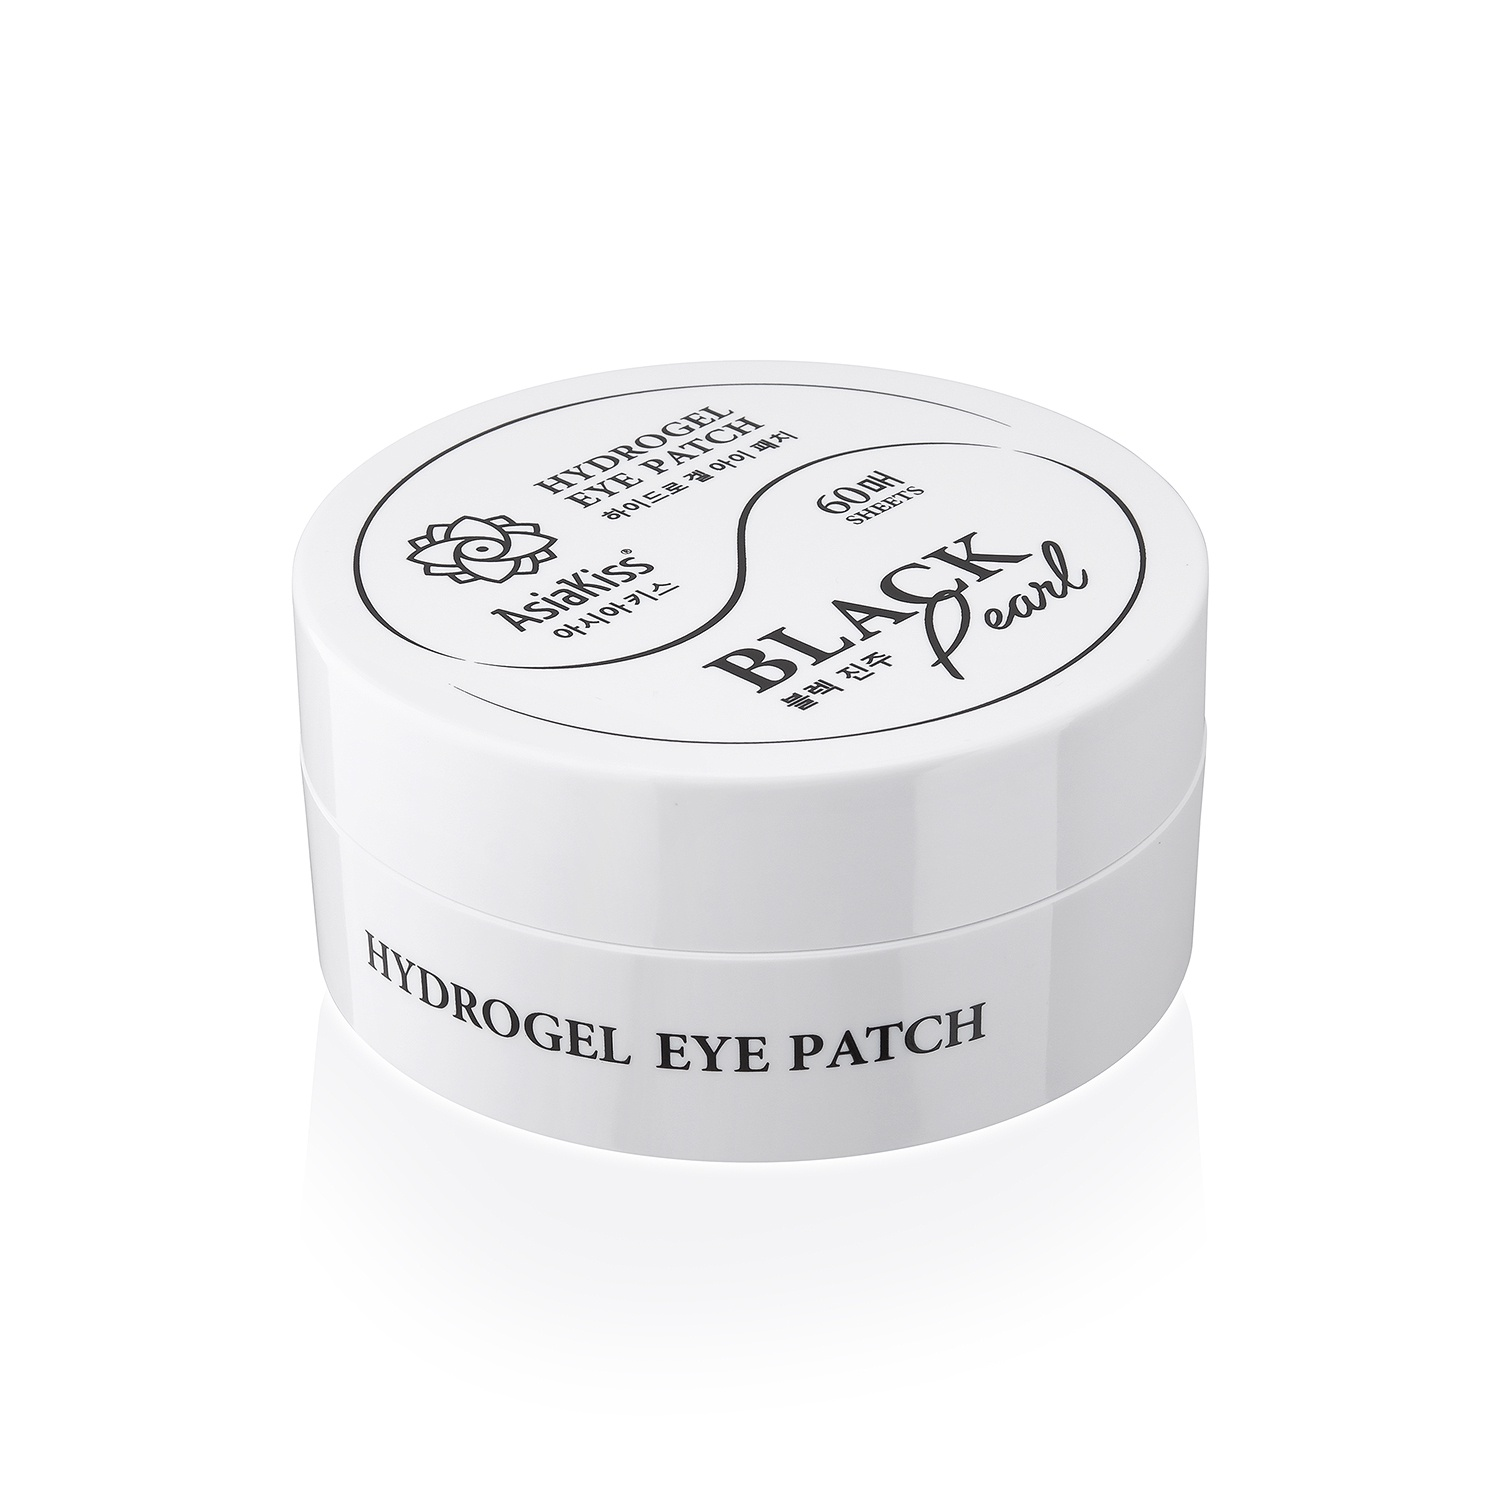 Патчи АsiaKiss Hydrogel eye patch Black Pearl, 60 шт